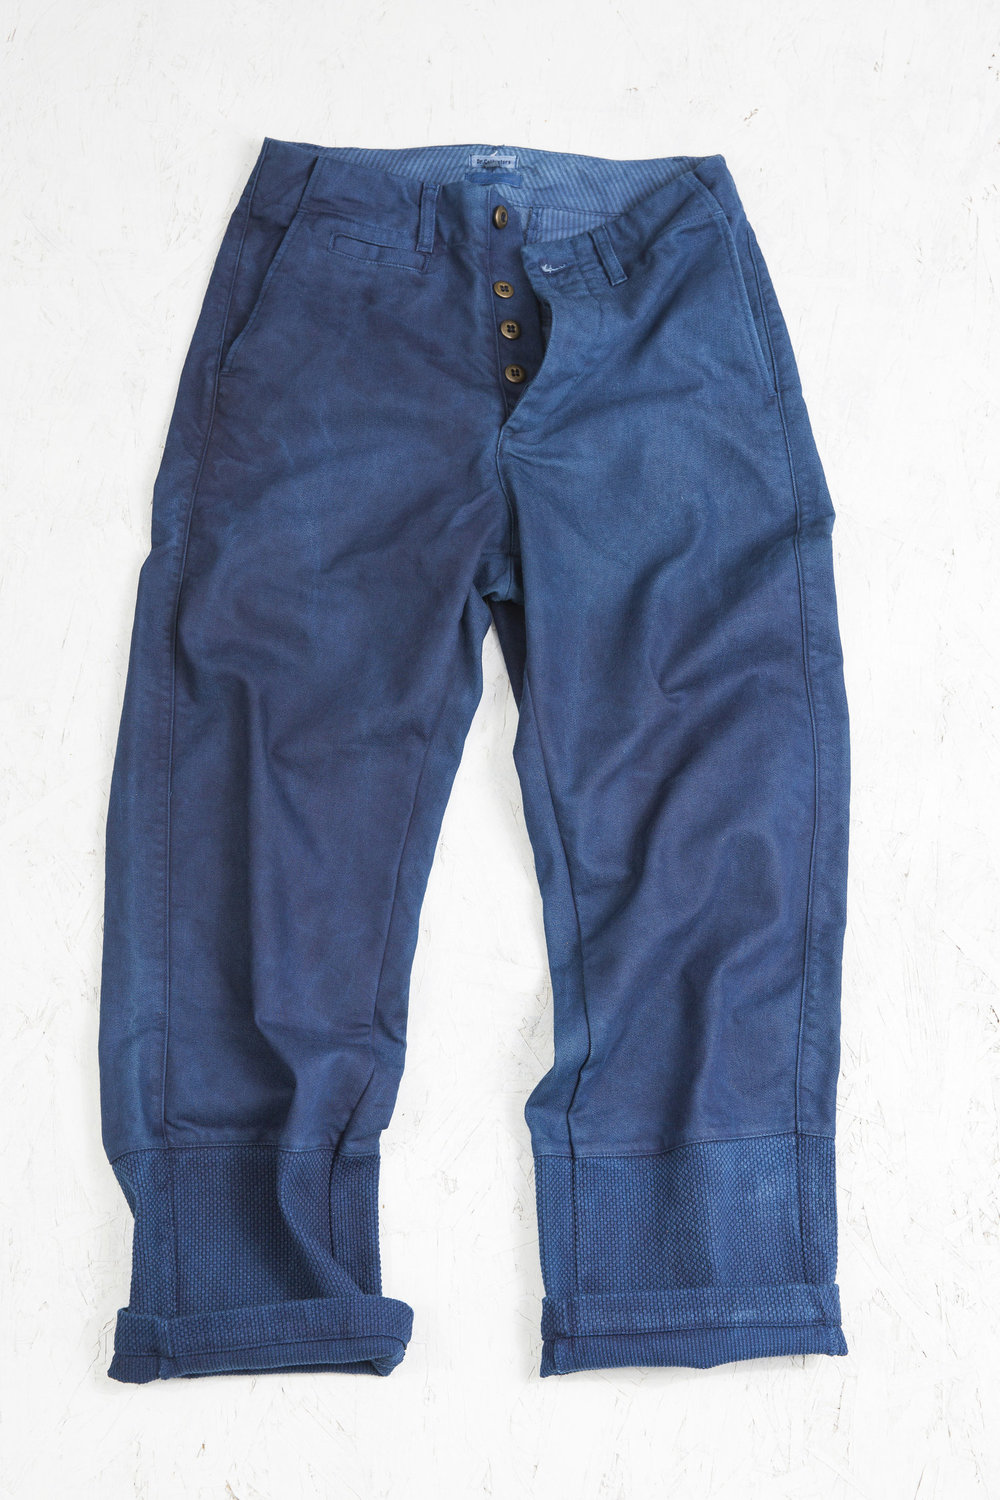 P25+Hunter+Pant(Indigo)2.jpg